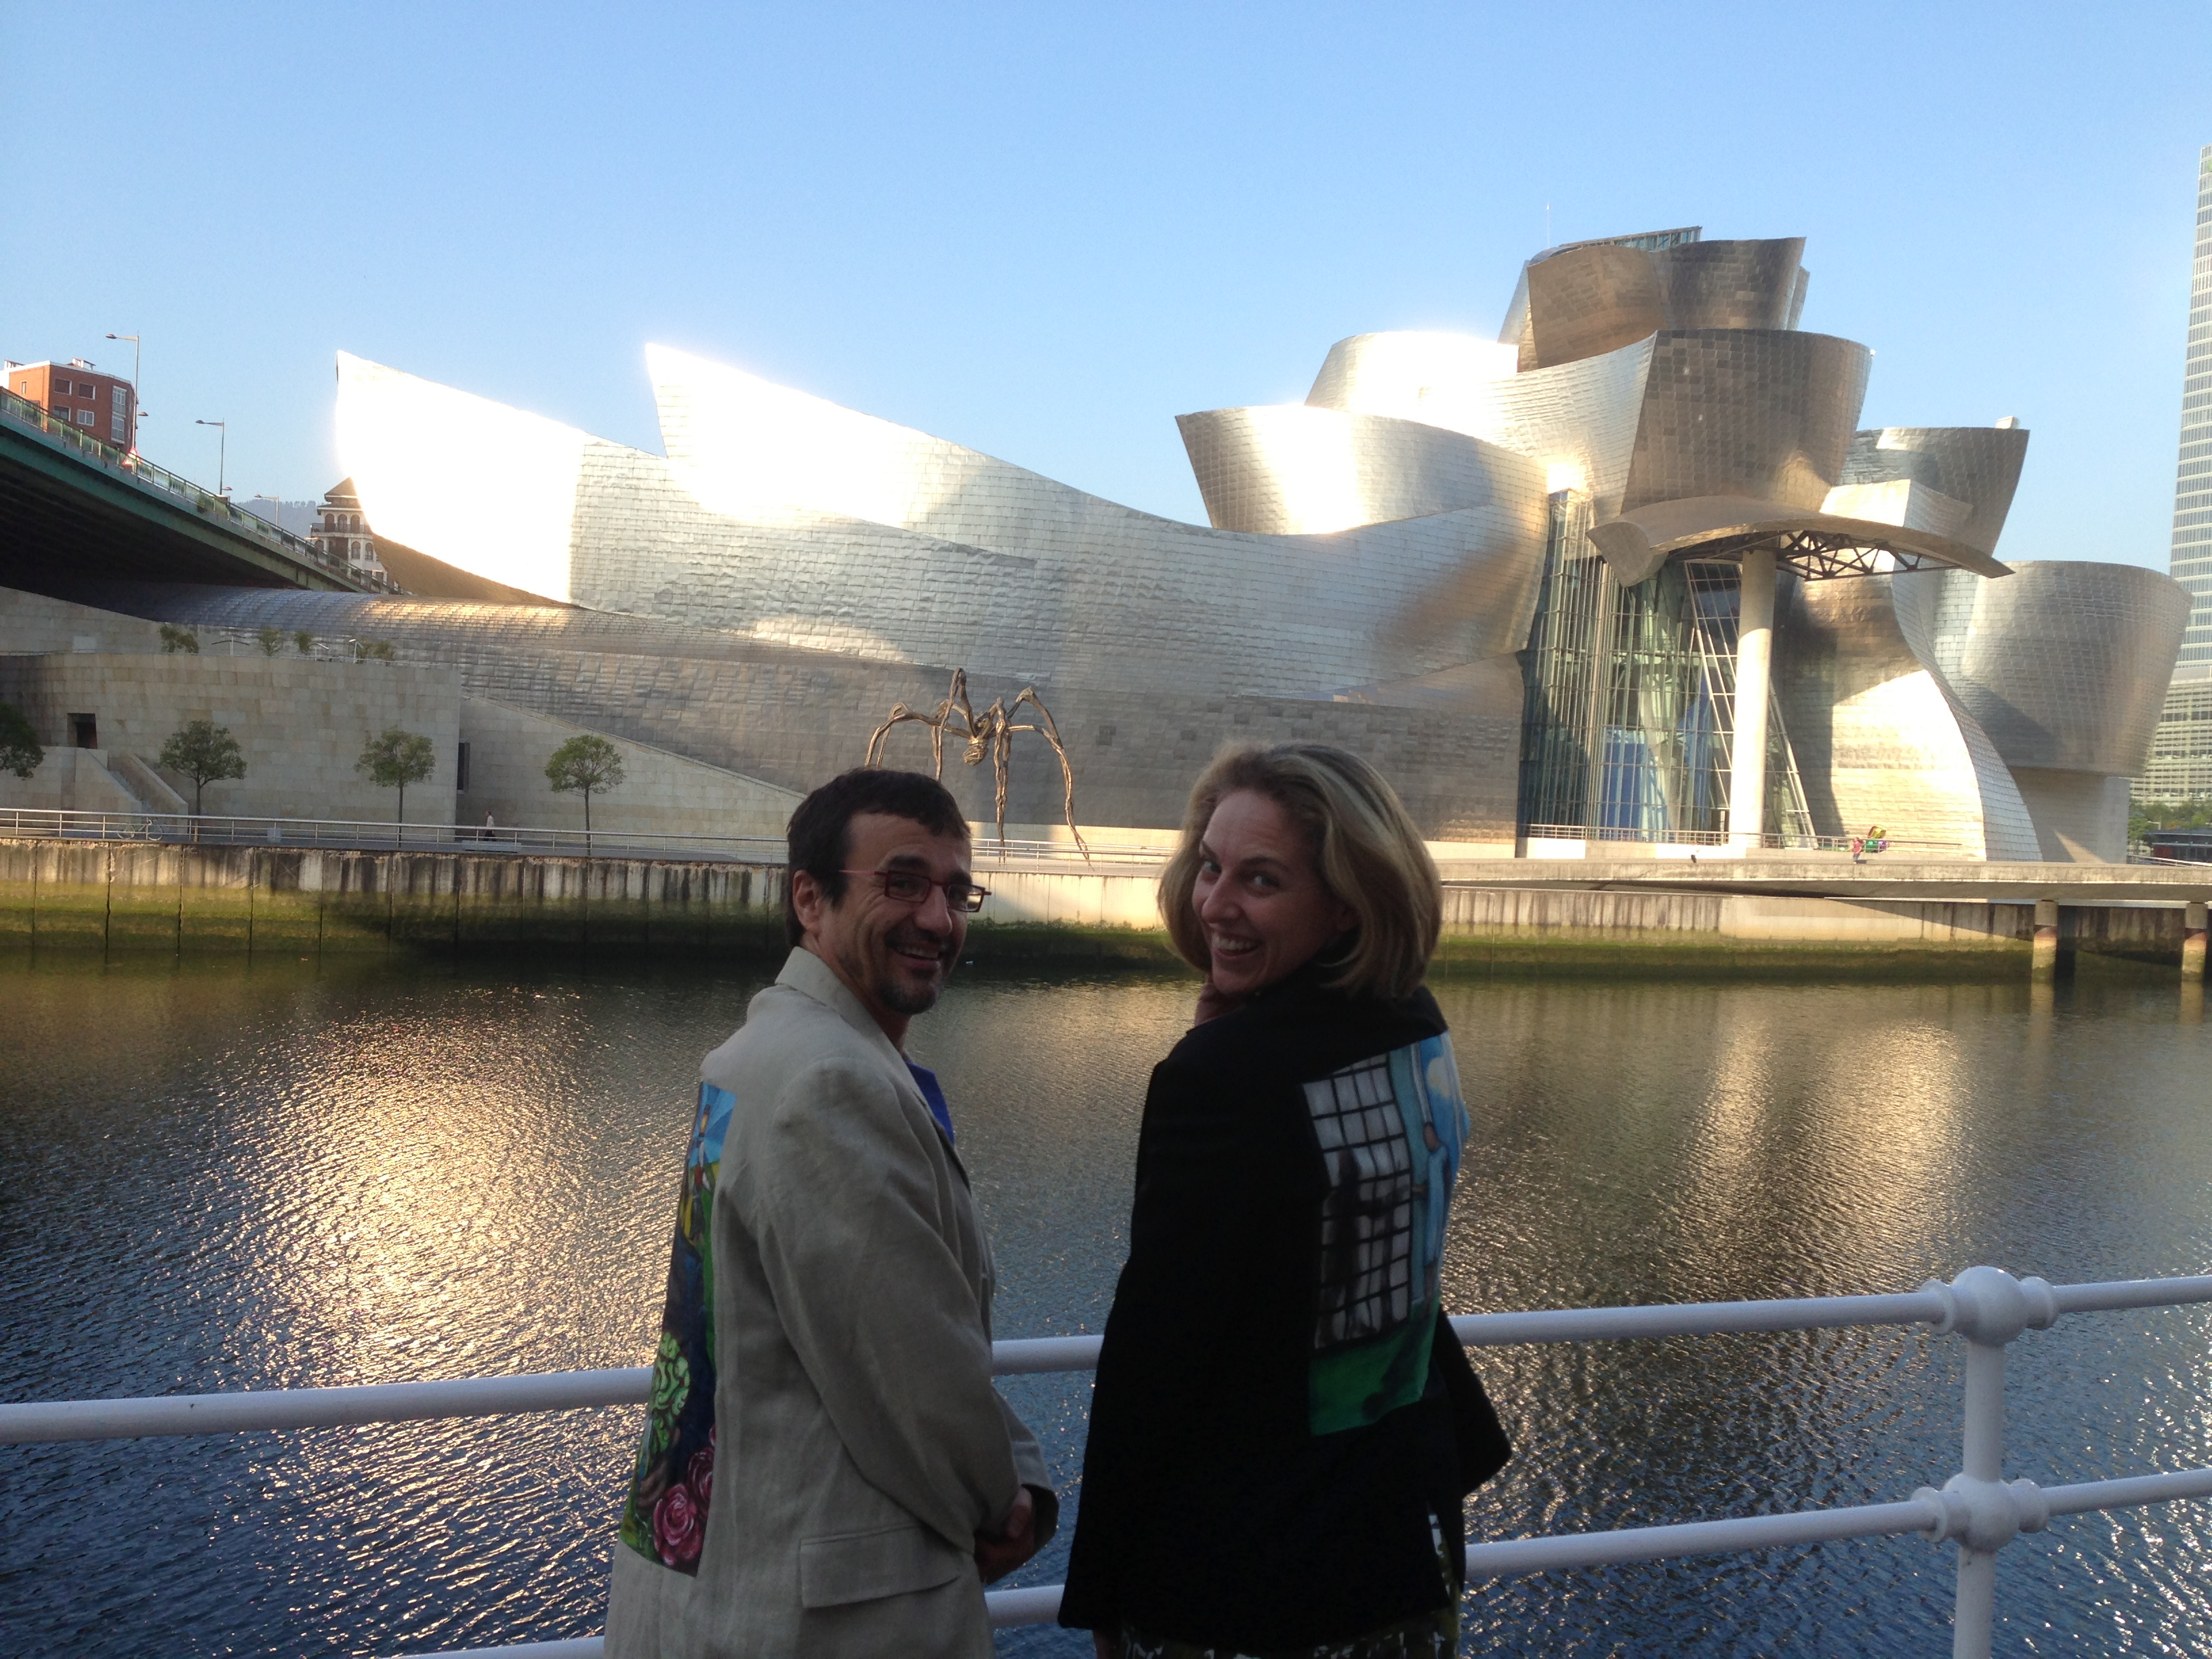 Bacigalupe and I at the Guggenheim Bilbao